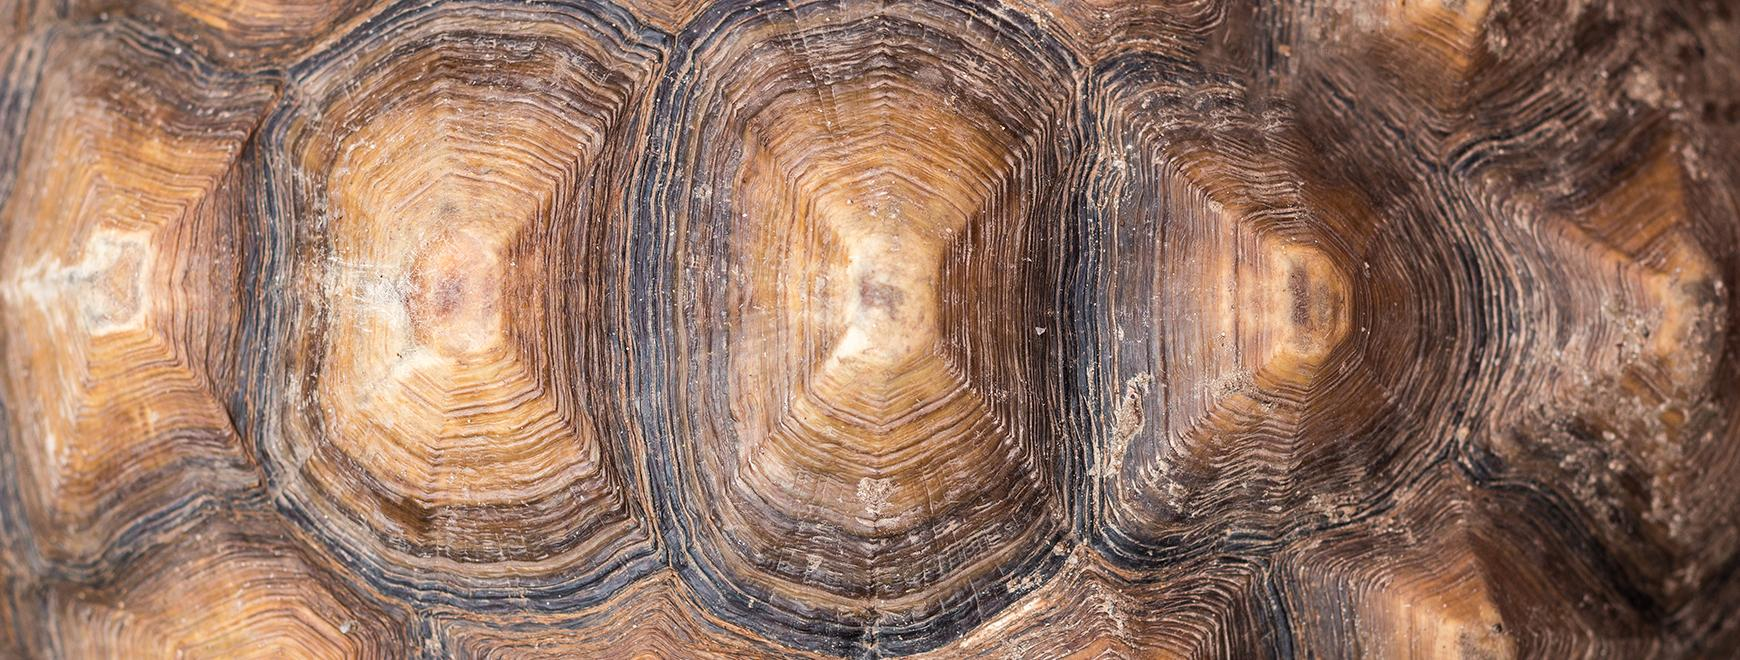 Texture of Turtle carapace.